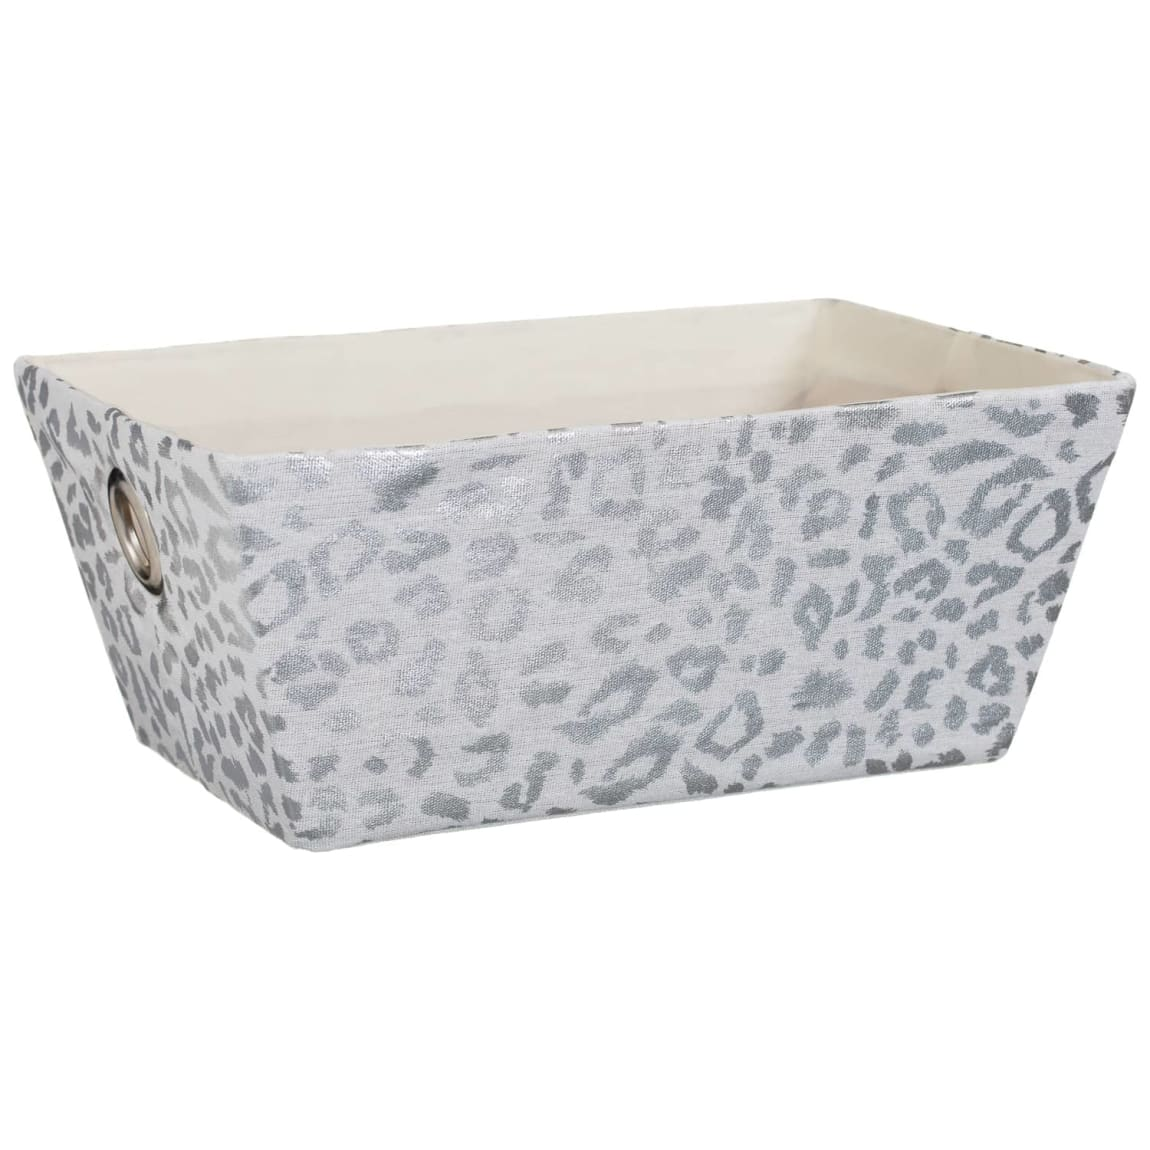 Animal Print Foil Basket - Leopard